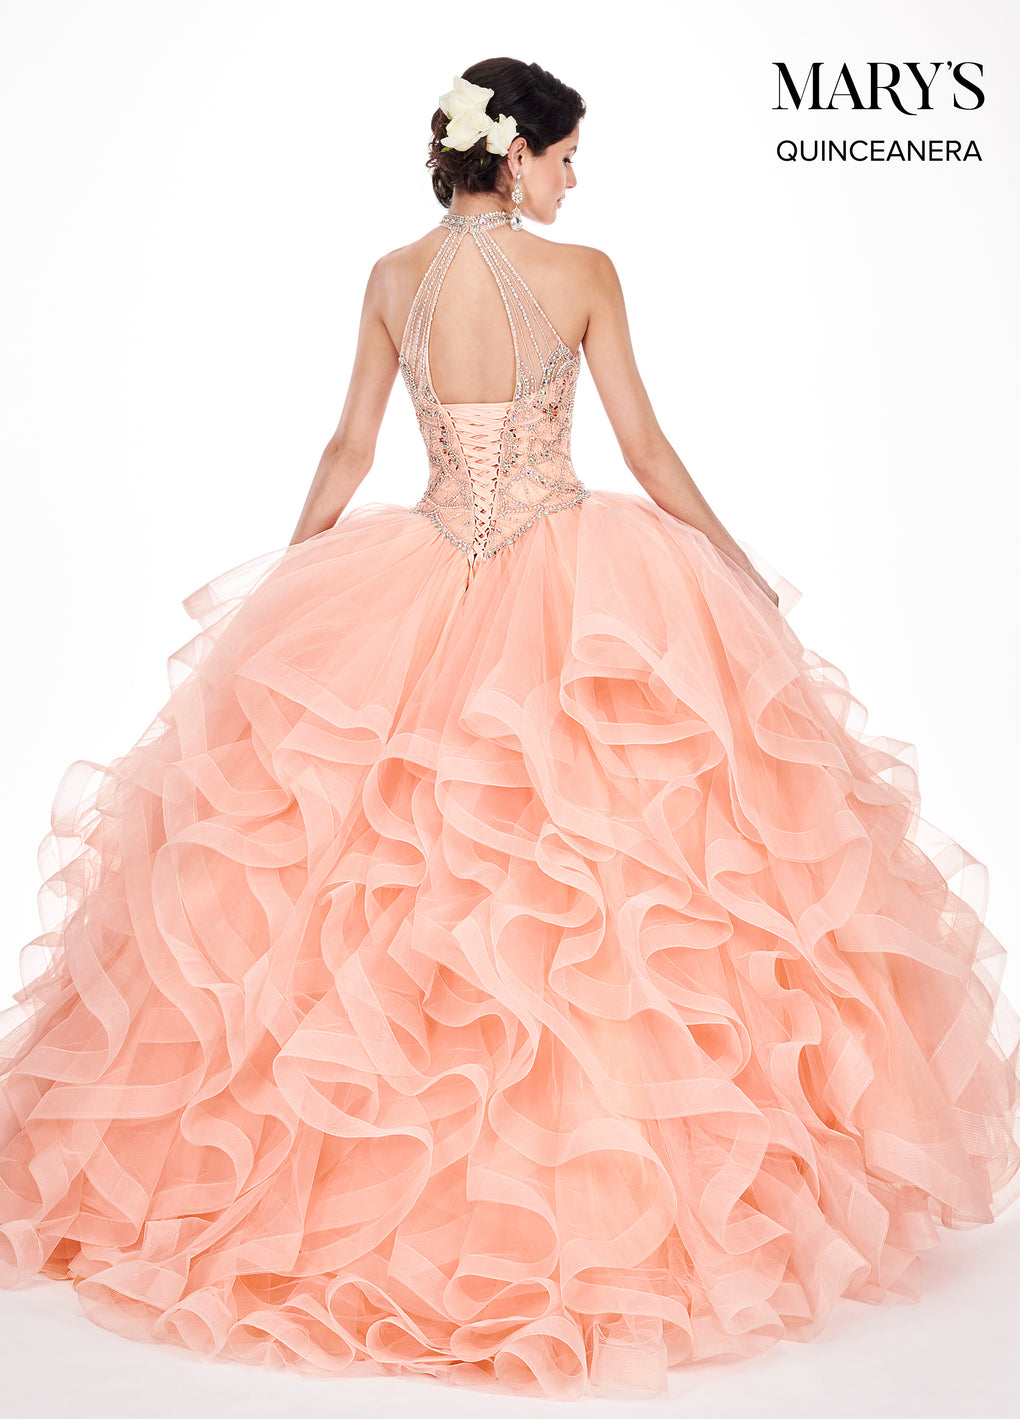 Marys Quinceanera Dresses in Peach, Midnight Blue , or Red Color